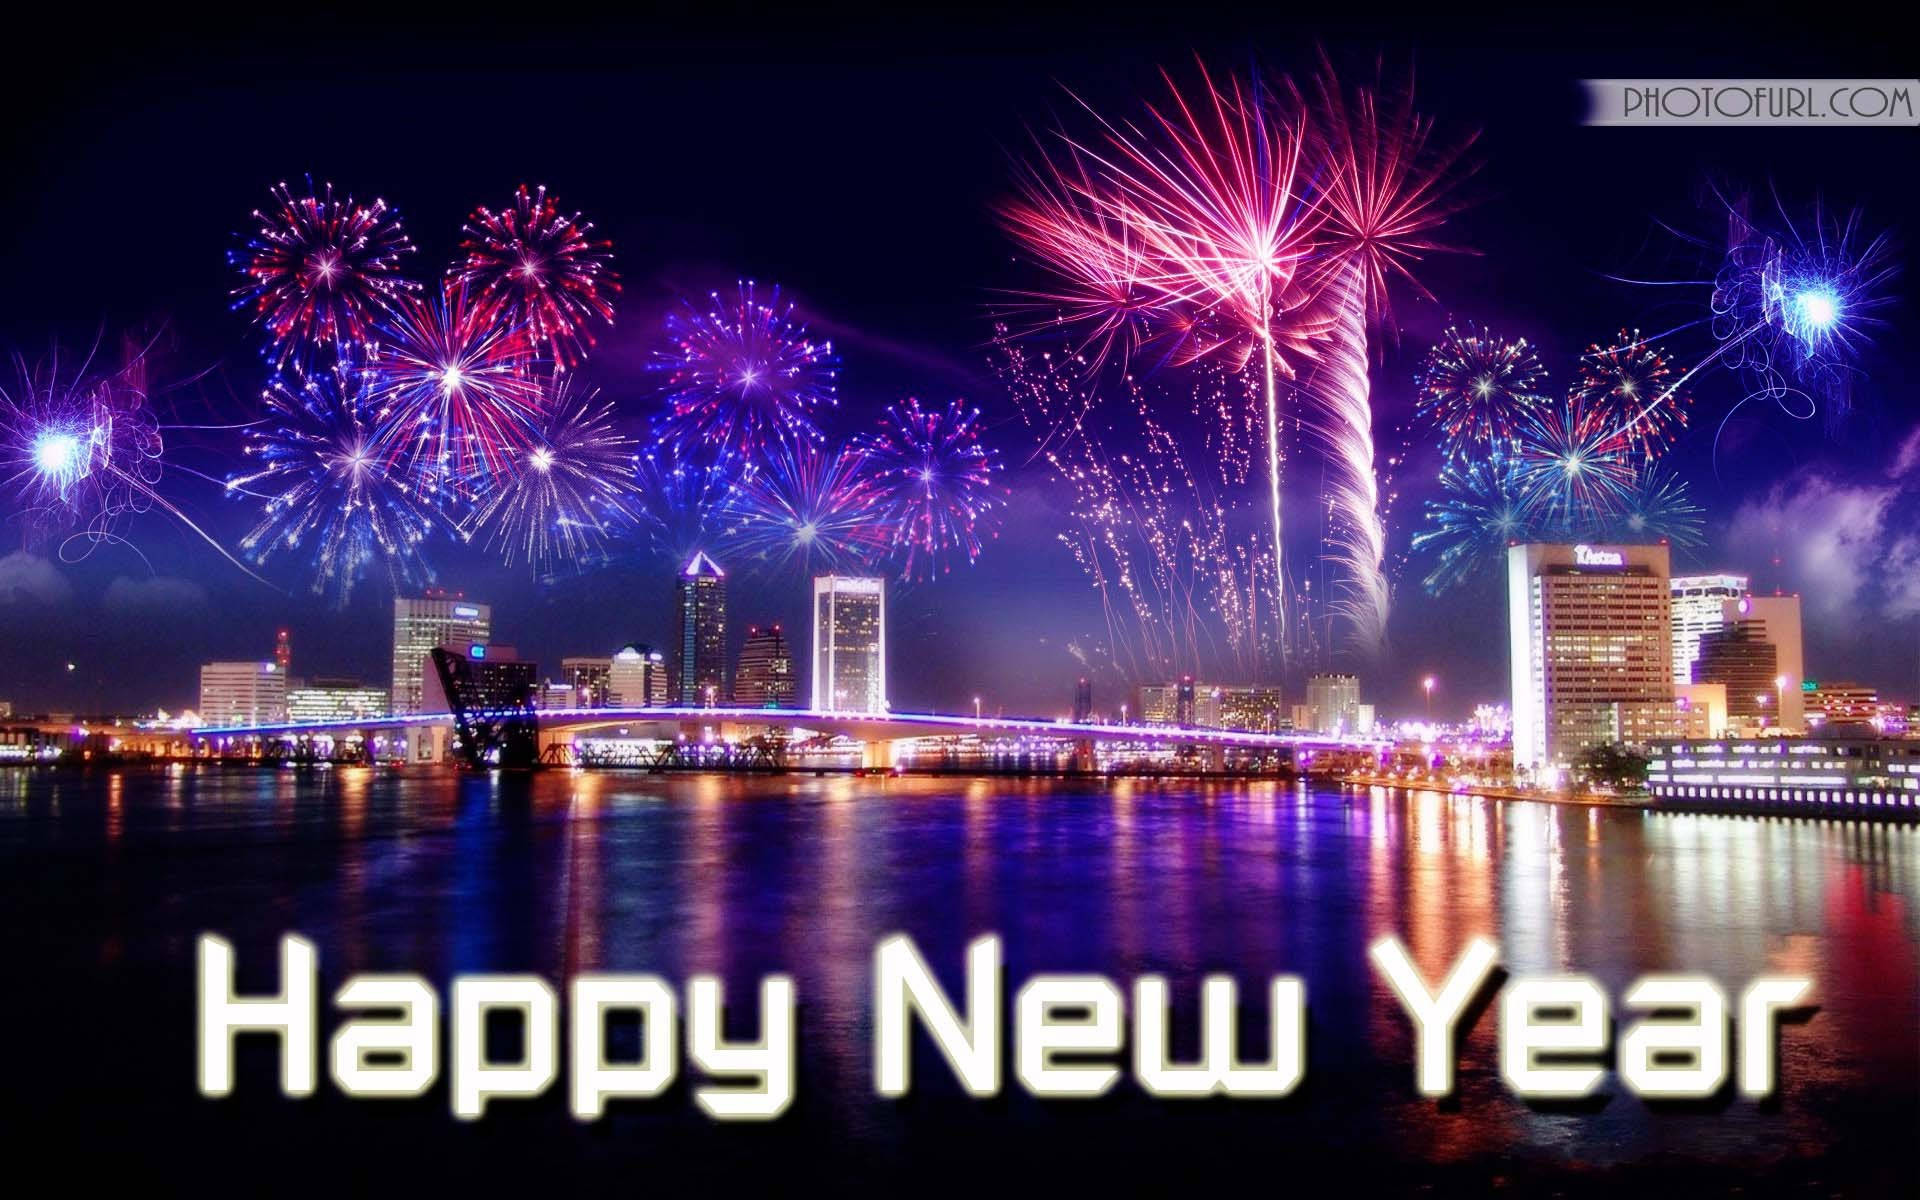 happy new year wallpaper high definition